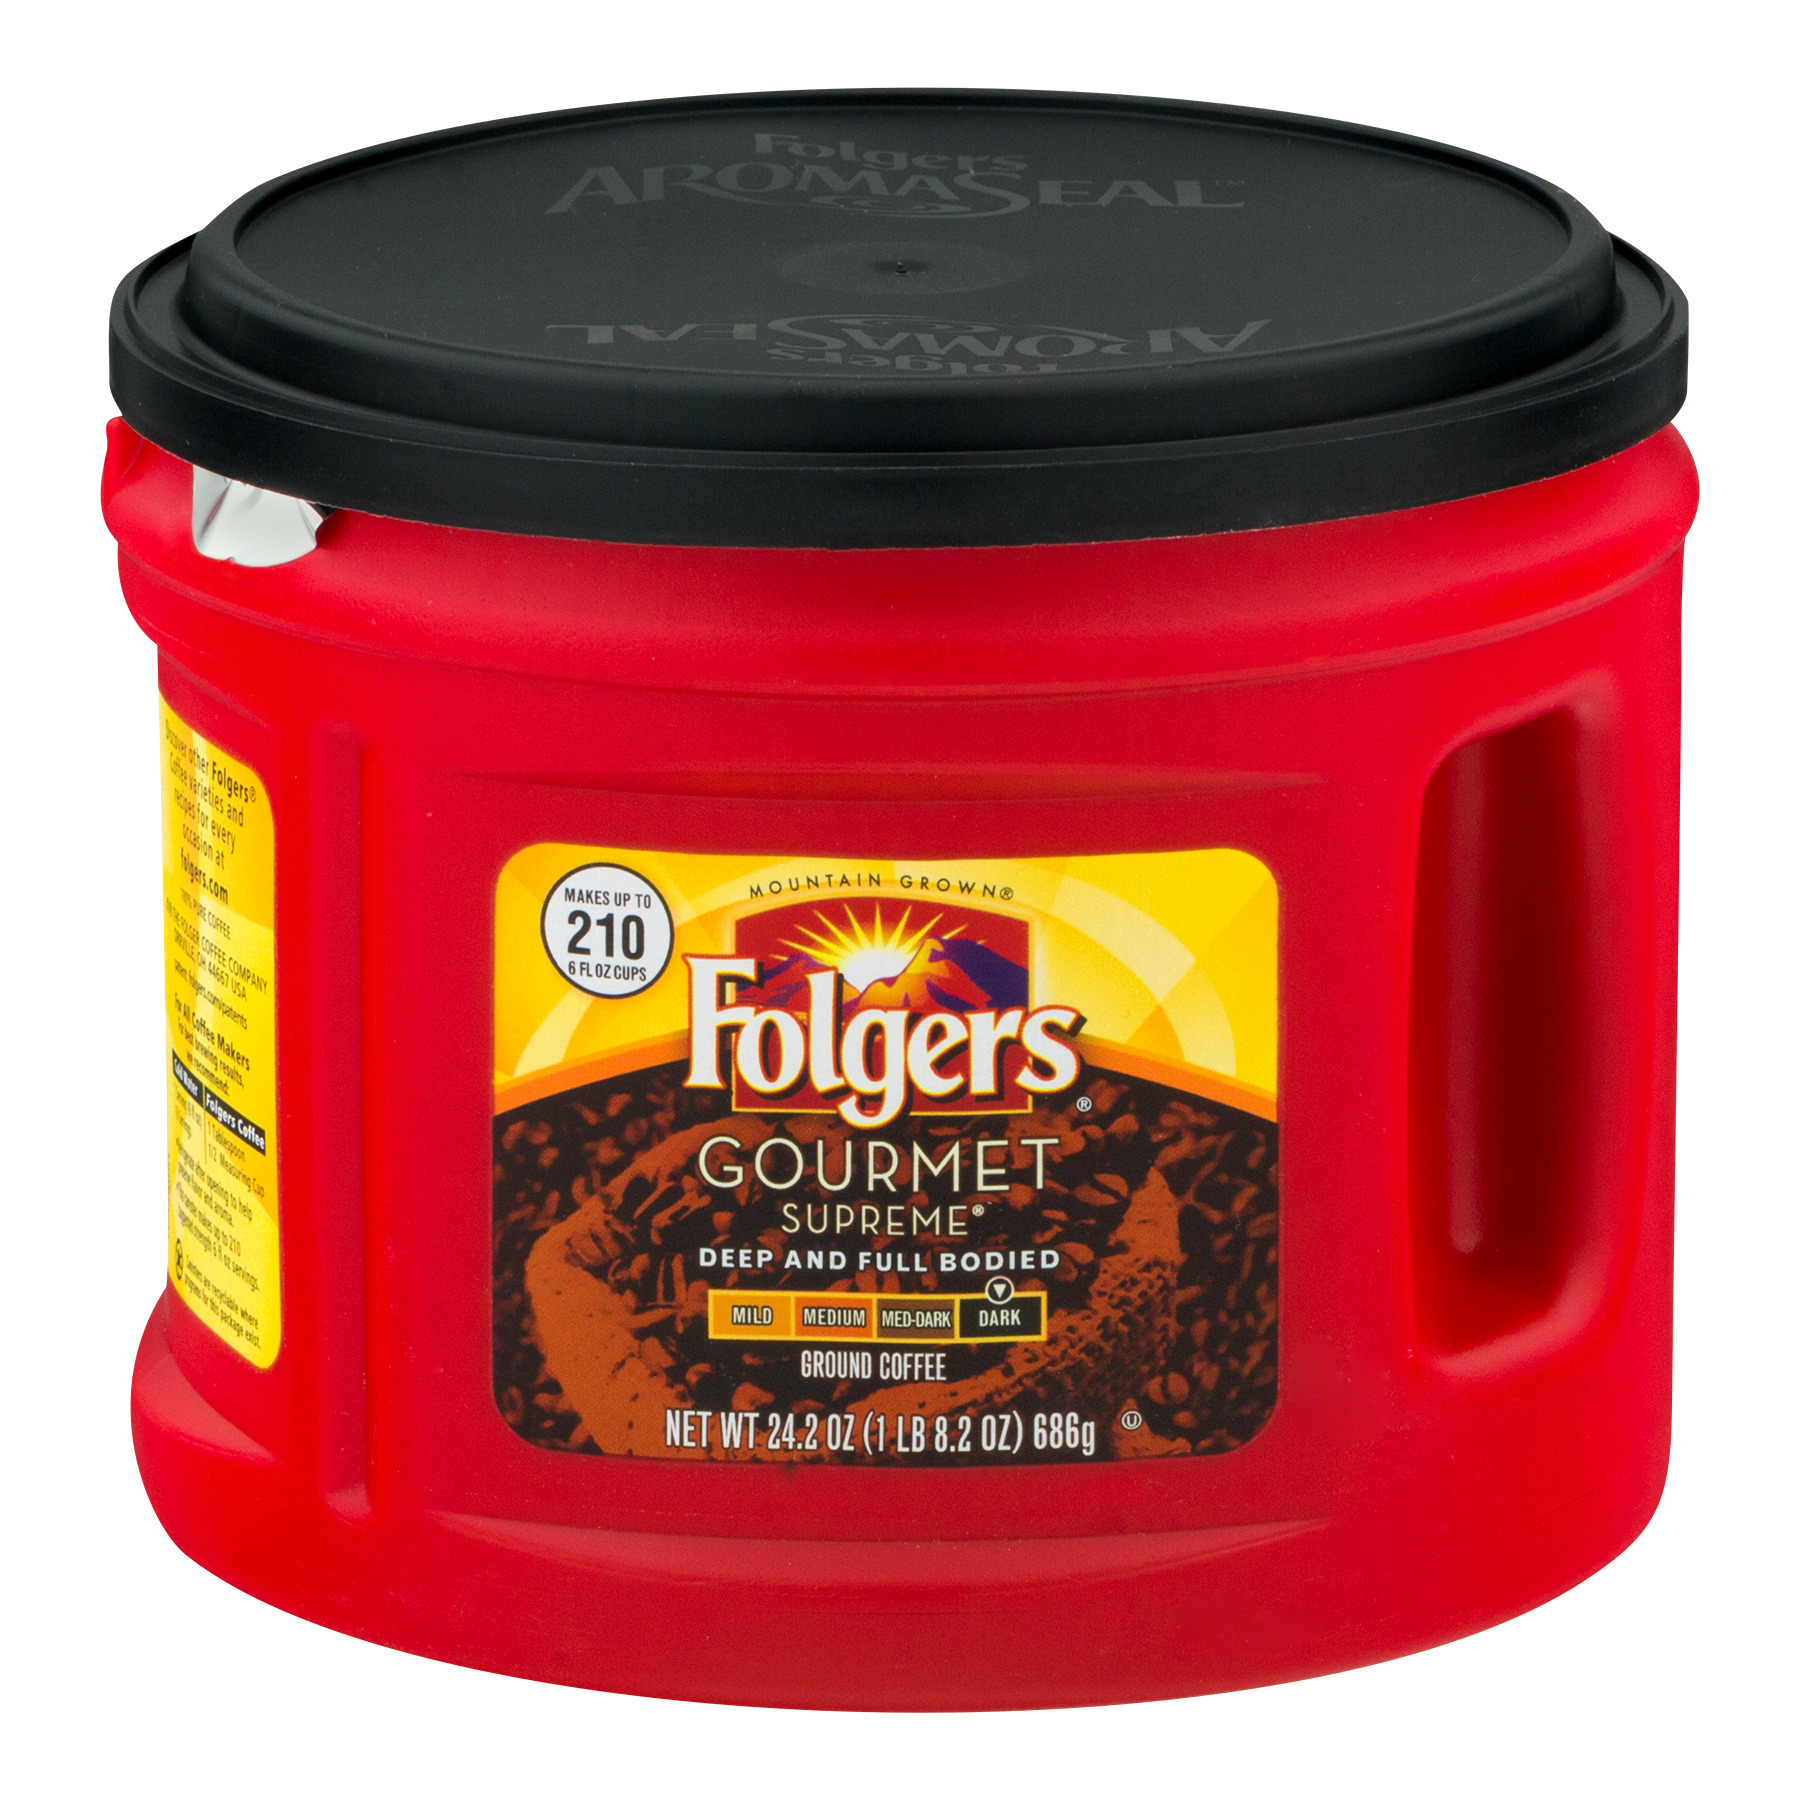 Folgers Gourmet Supreme Ground Coffee Dark, 24.2 OZ